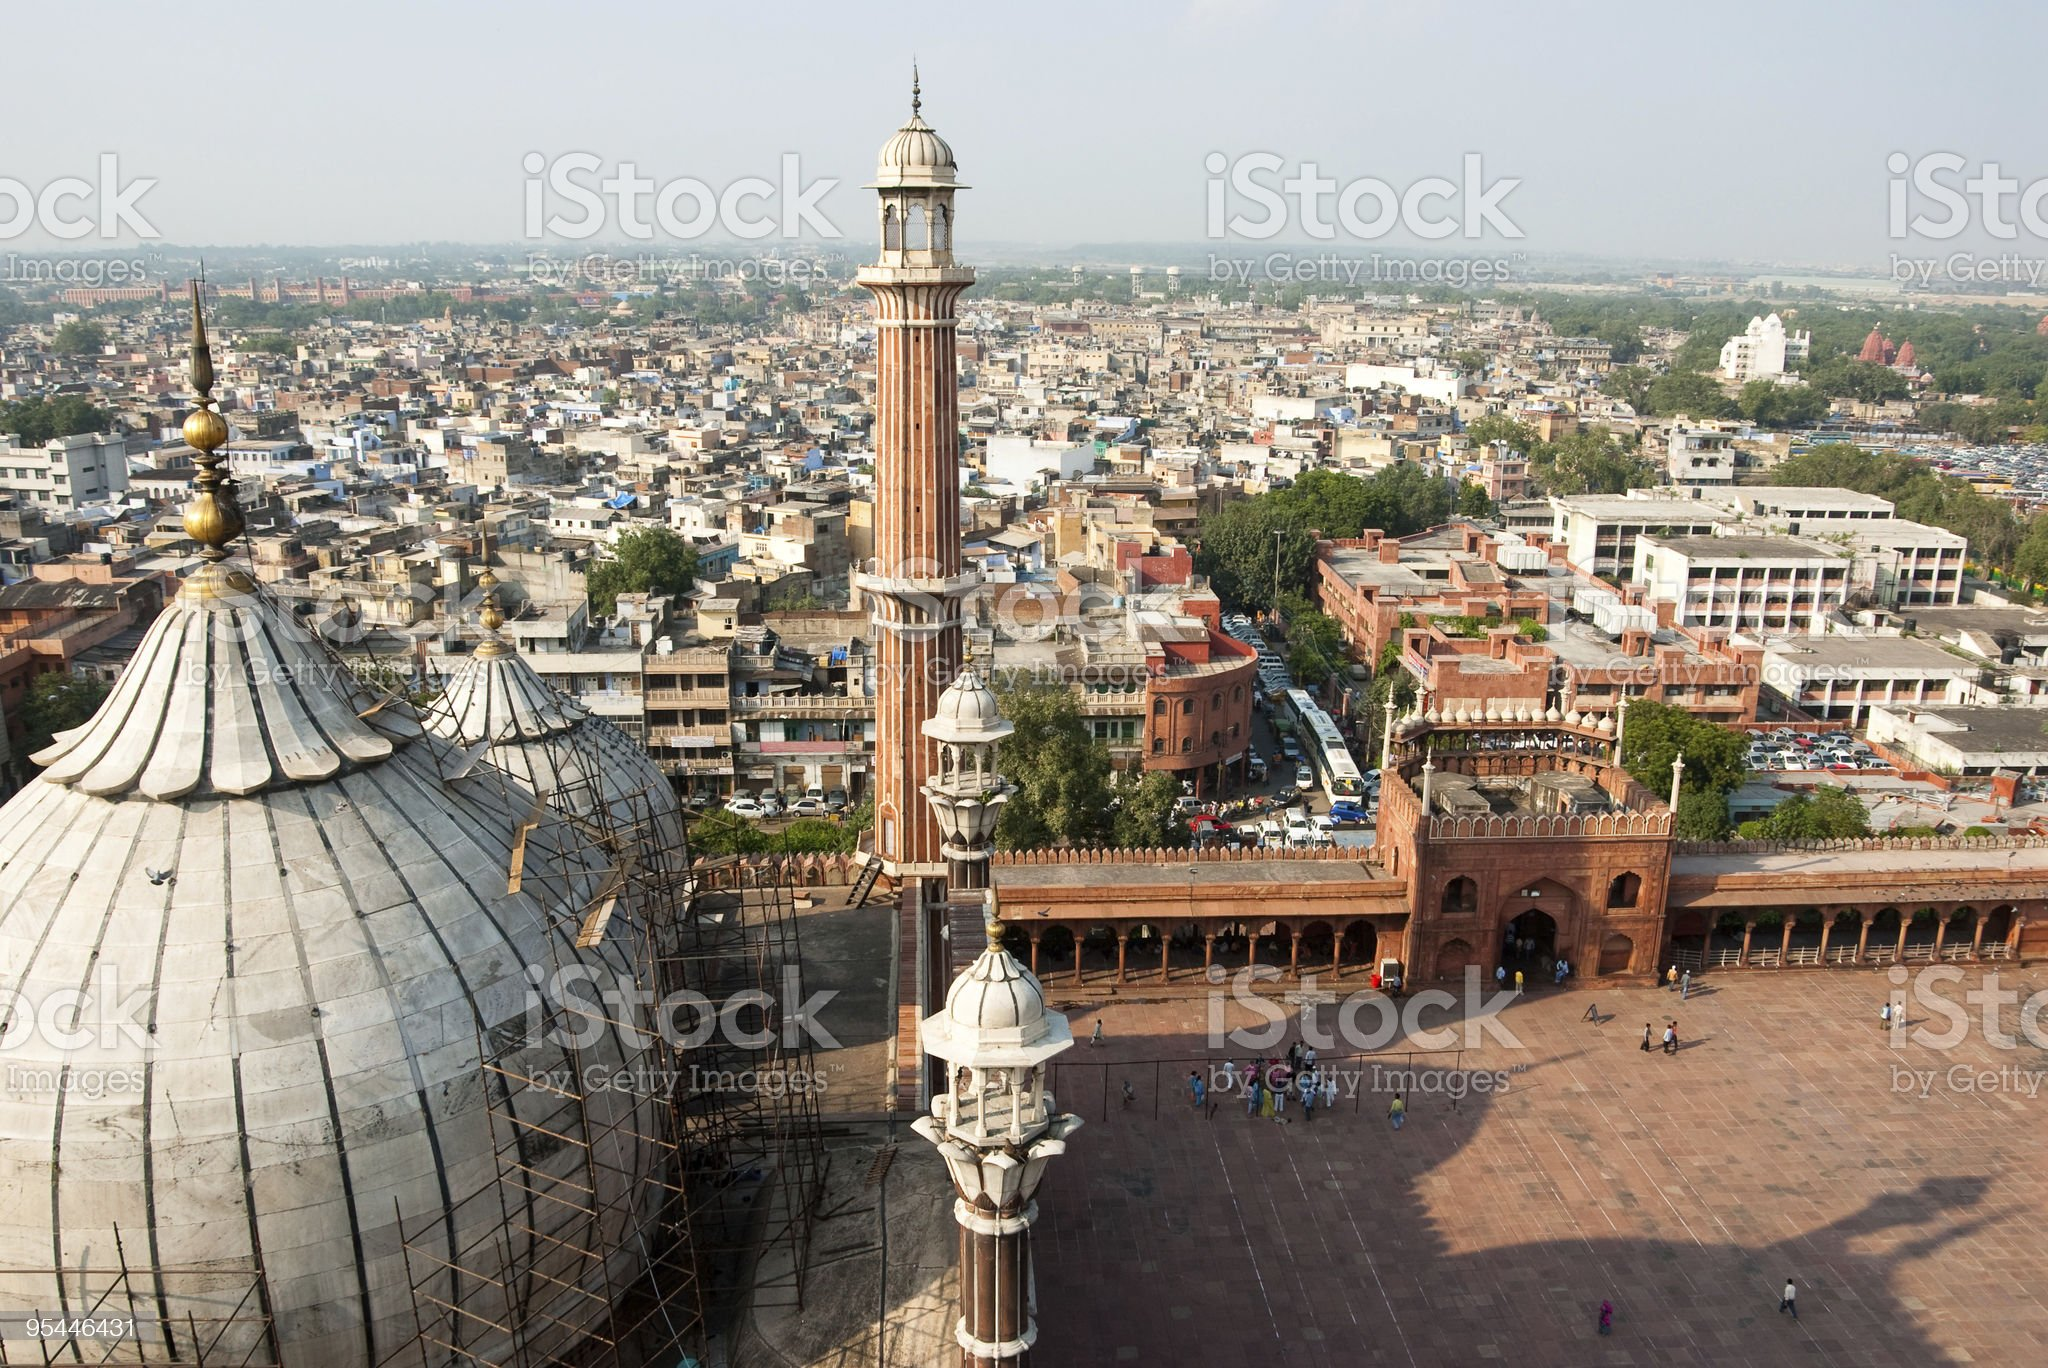 Delhi Jama Masjid royalty-free stock photo